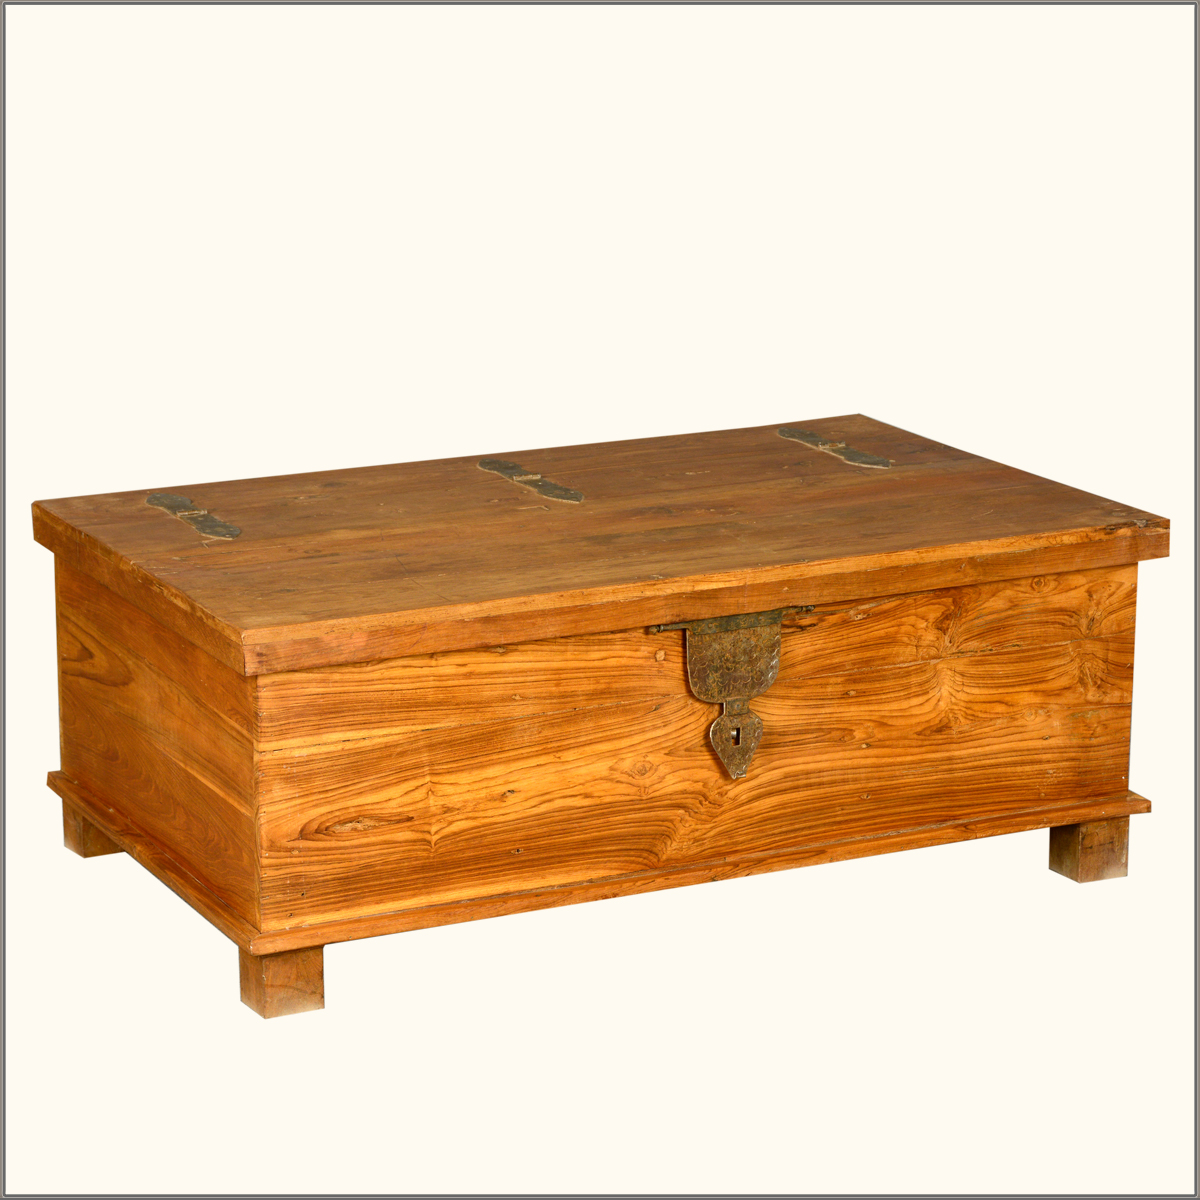 Rustic teak wood wrought iron distressed coffee table storage box chest trunk Coffee table chest with storage